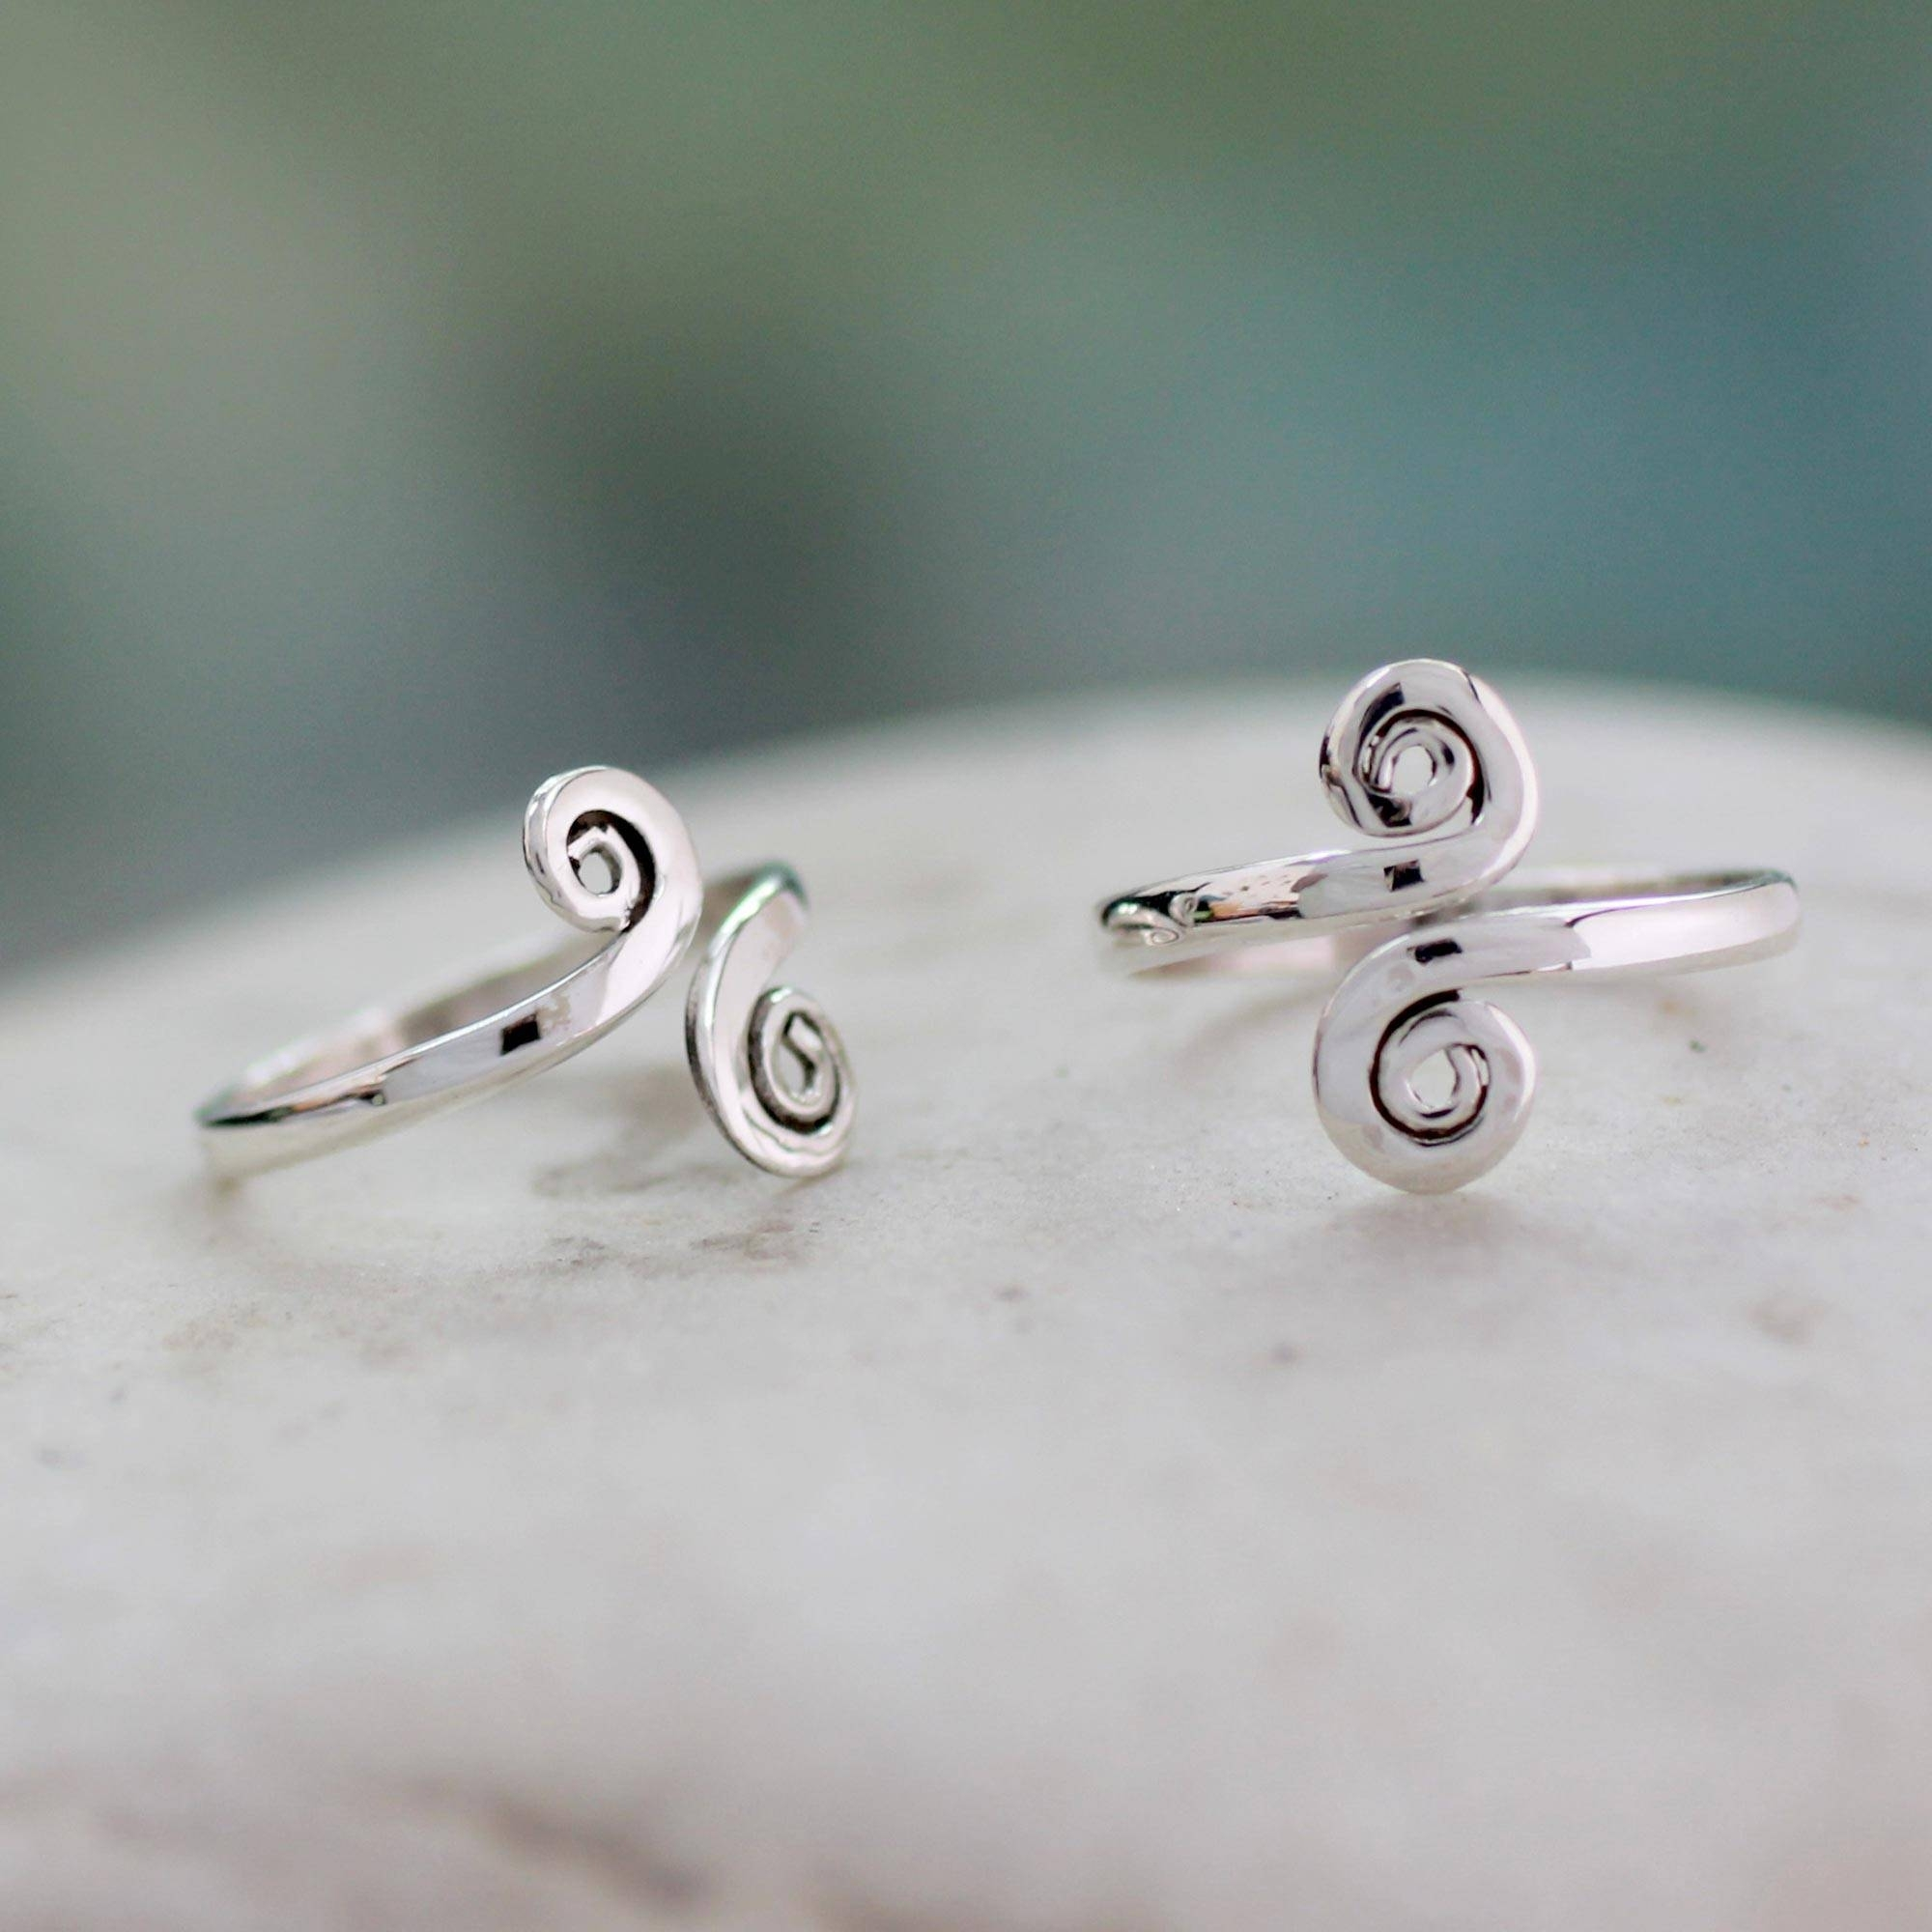 Handcrafted Sterling Silver Toe Rings From India (Pair Intended For Latest Indian Toe Rings (Gallery 8 of 15)